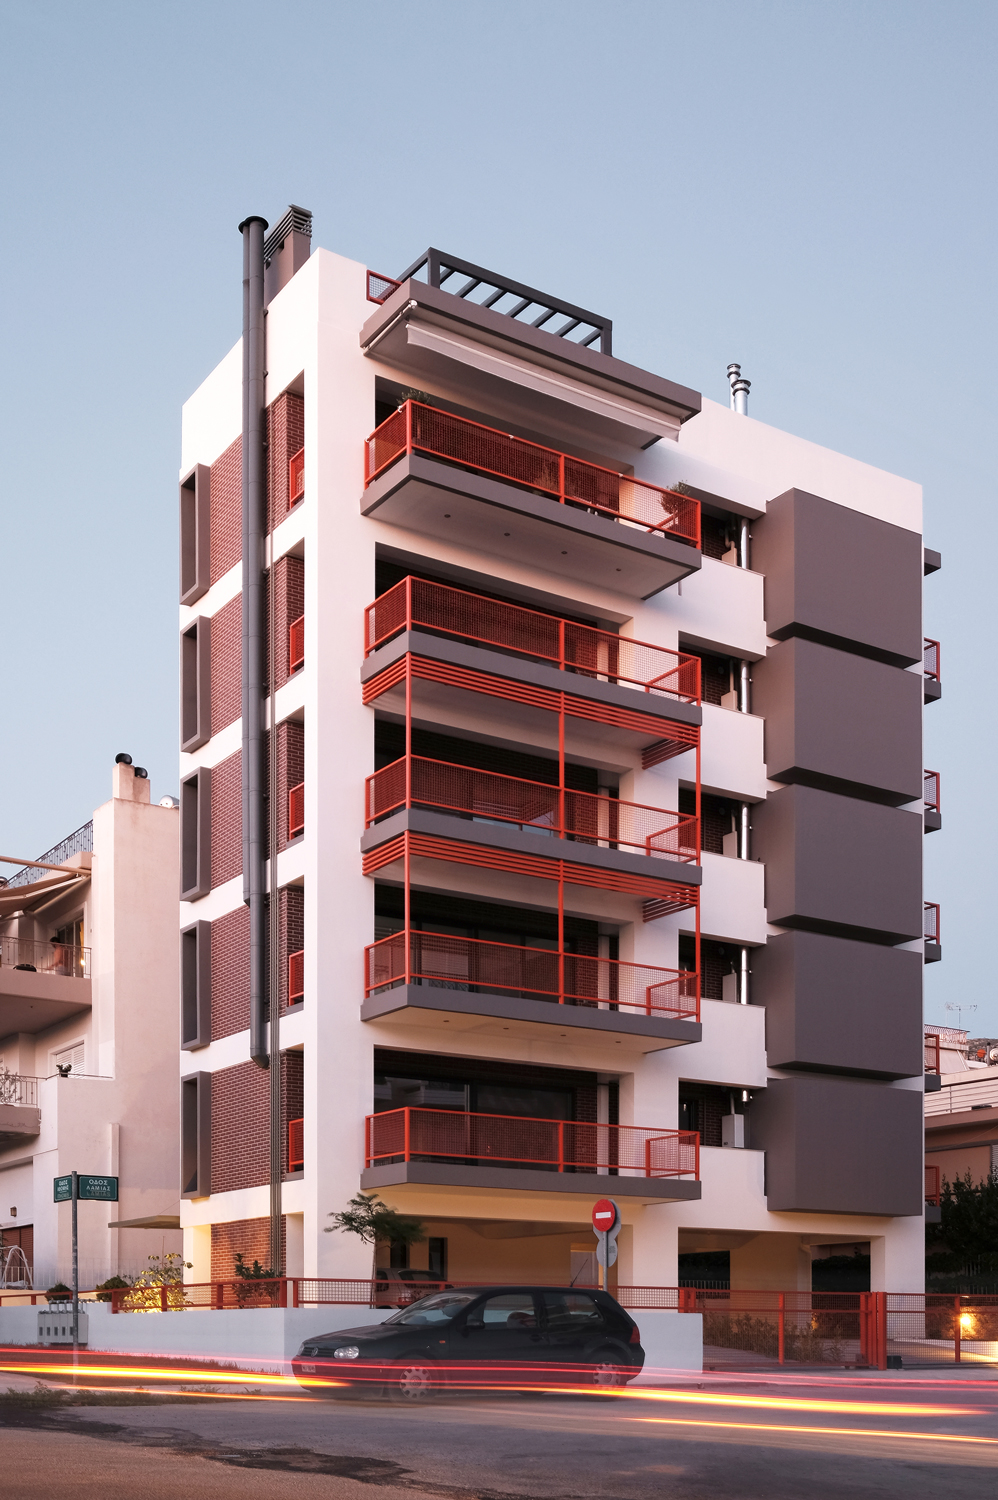 Apartment Building in Glyfada